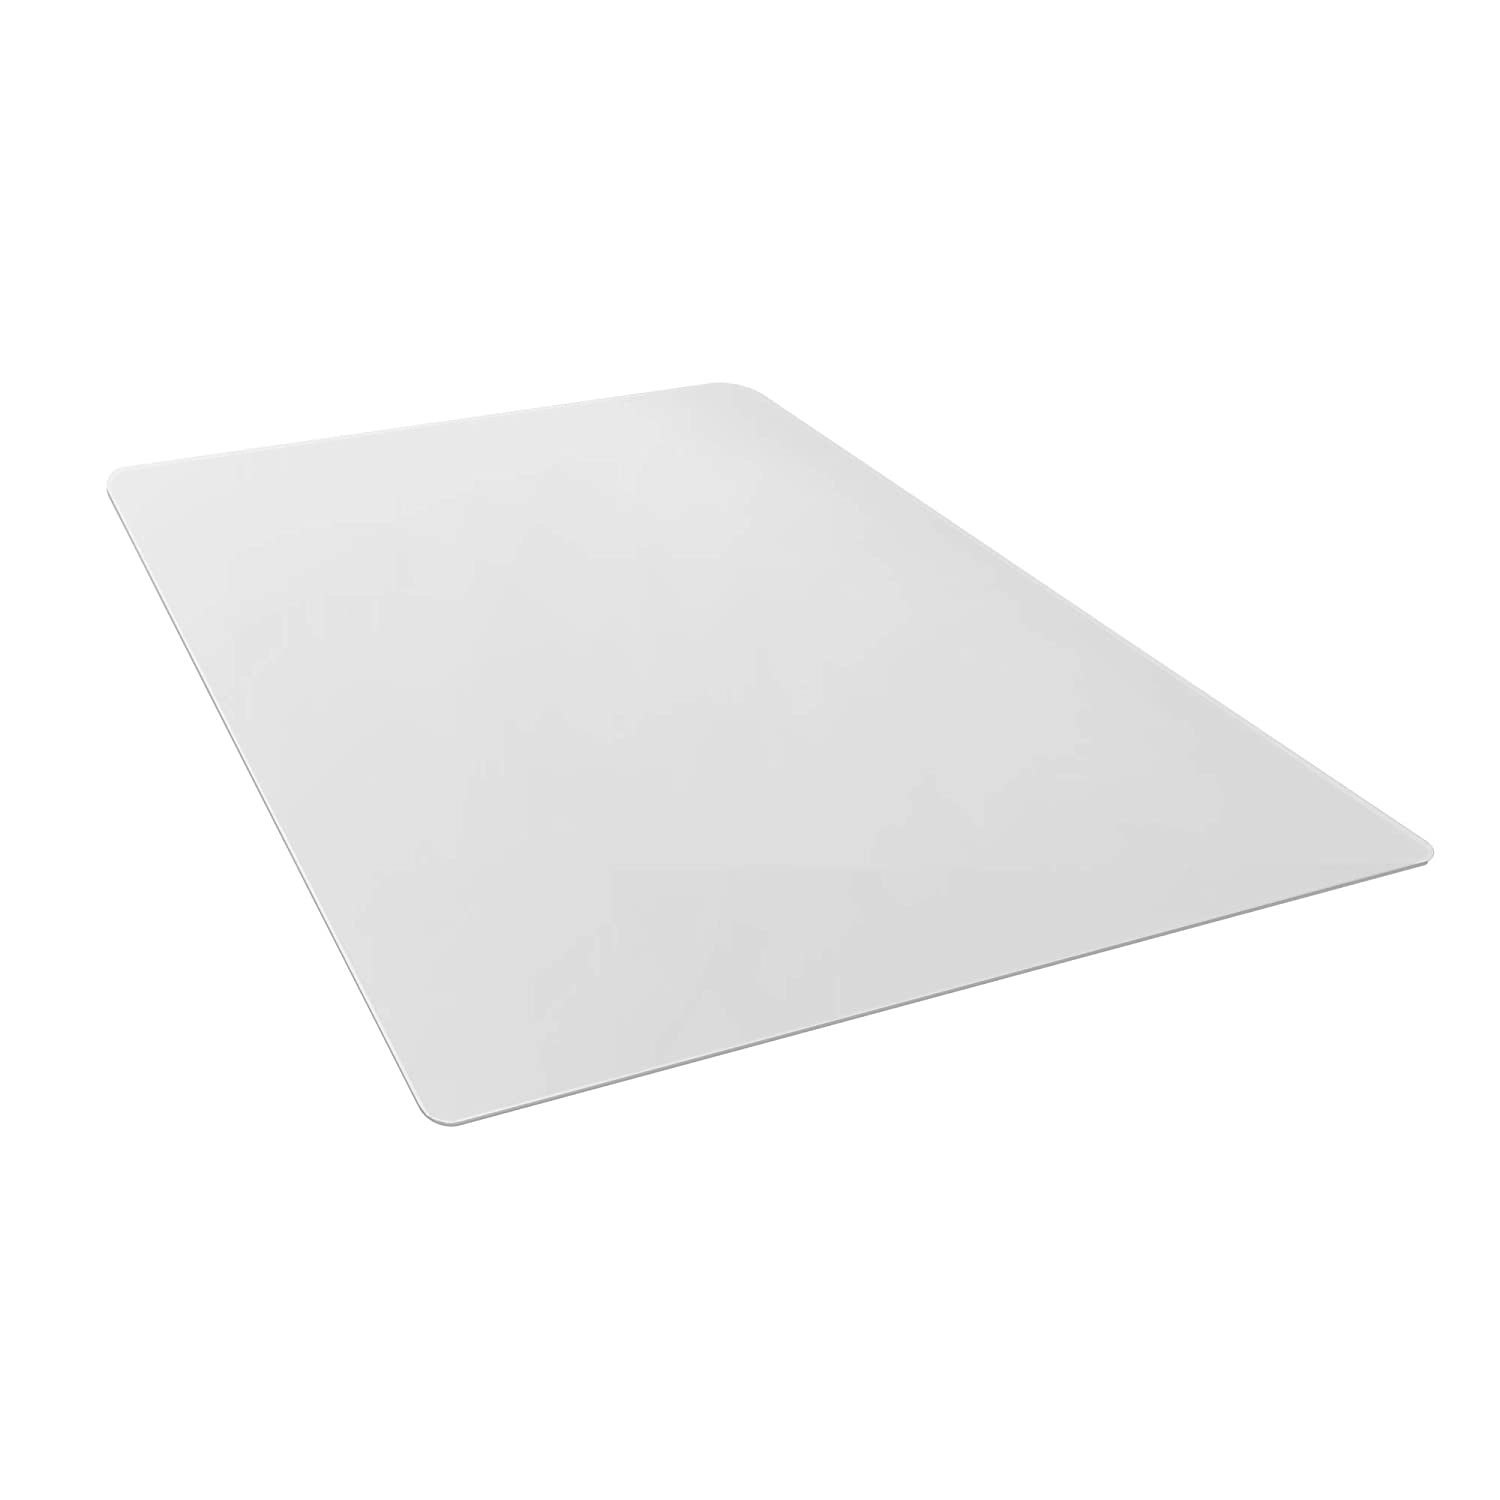 "AmazonBasics Polycarbonate Chair Mat for Hard Floors - 47"" x 51"""